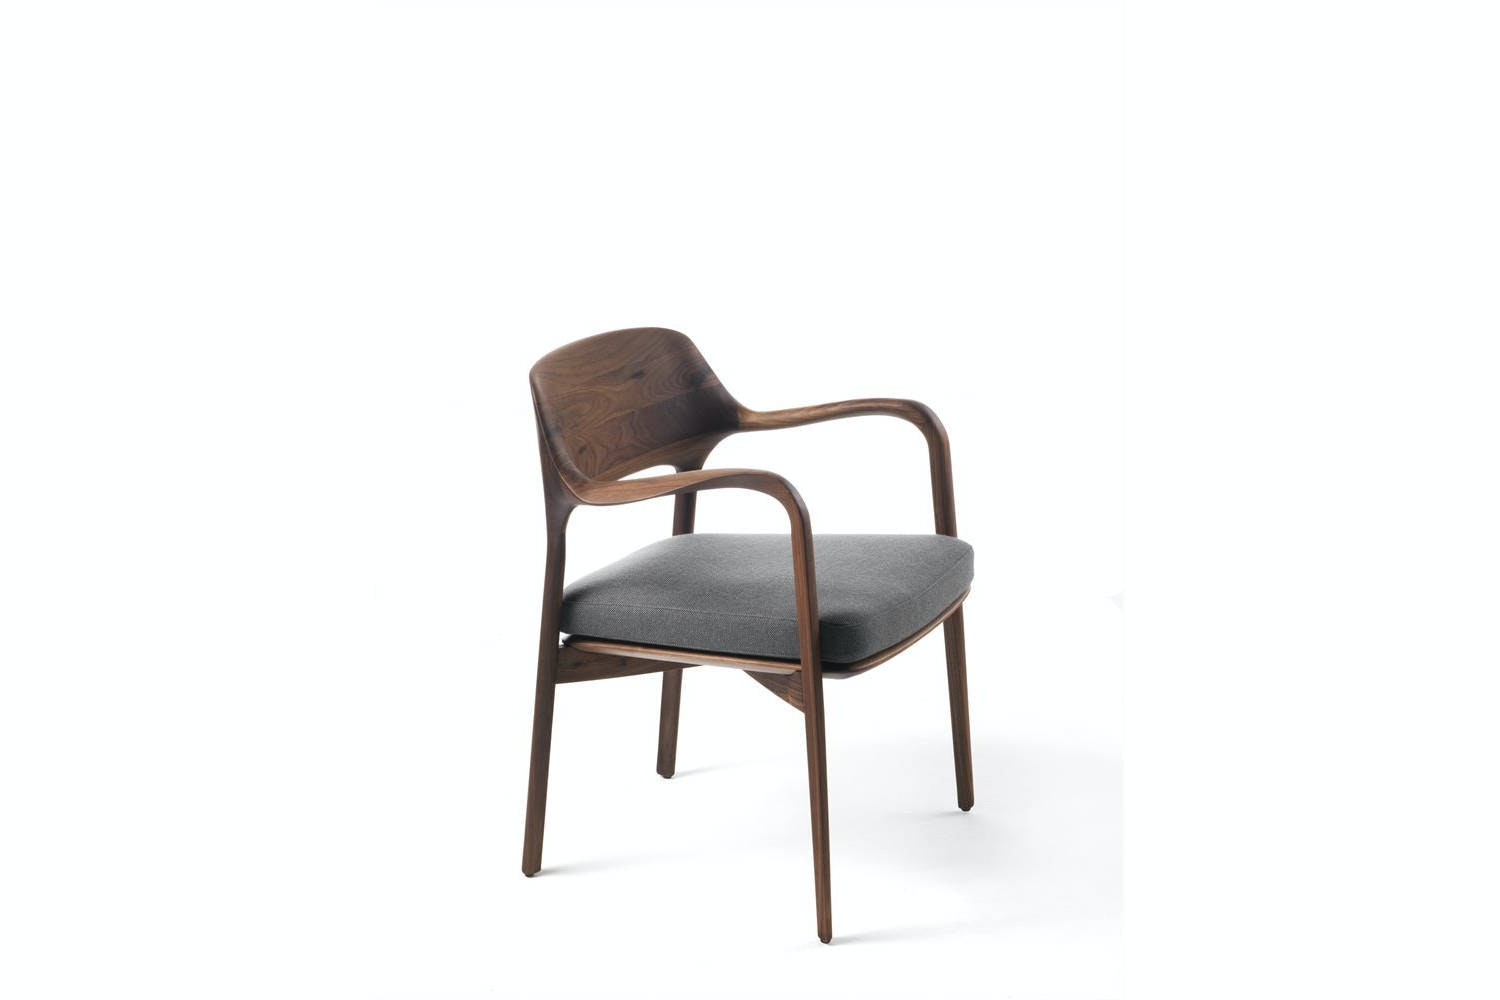 Ella Chair by Patrick Jouin for Porada